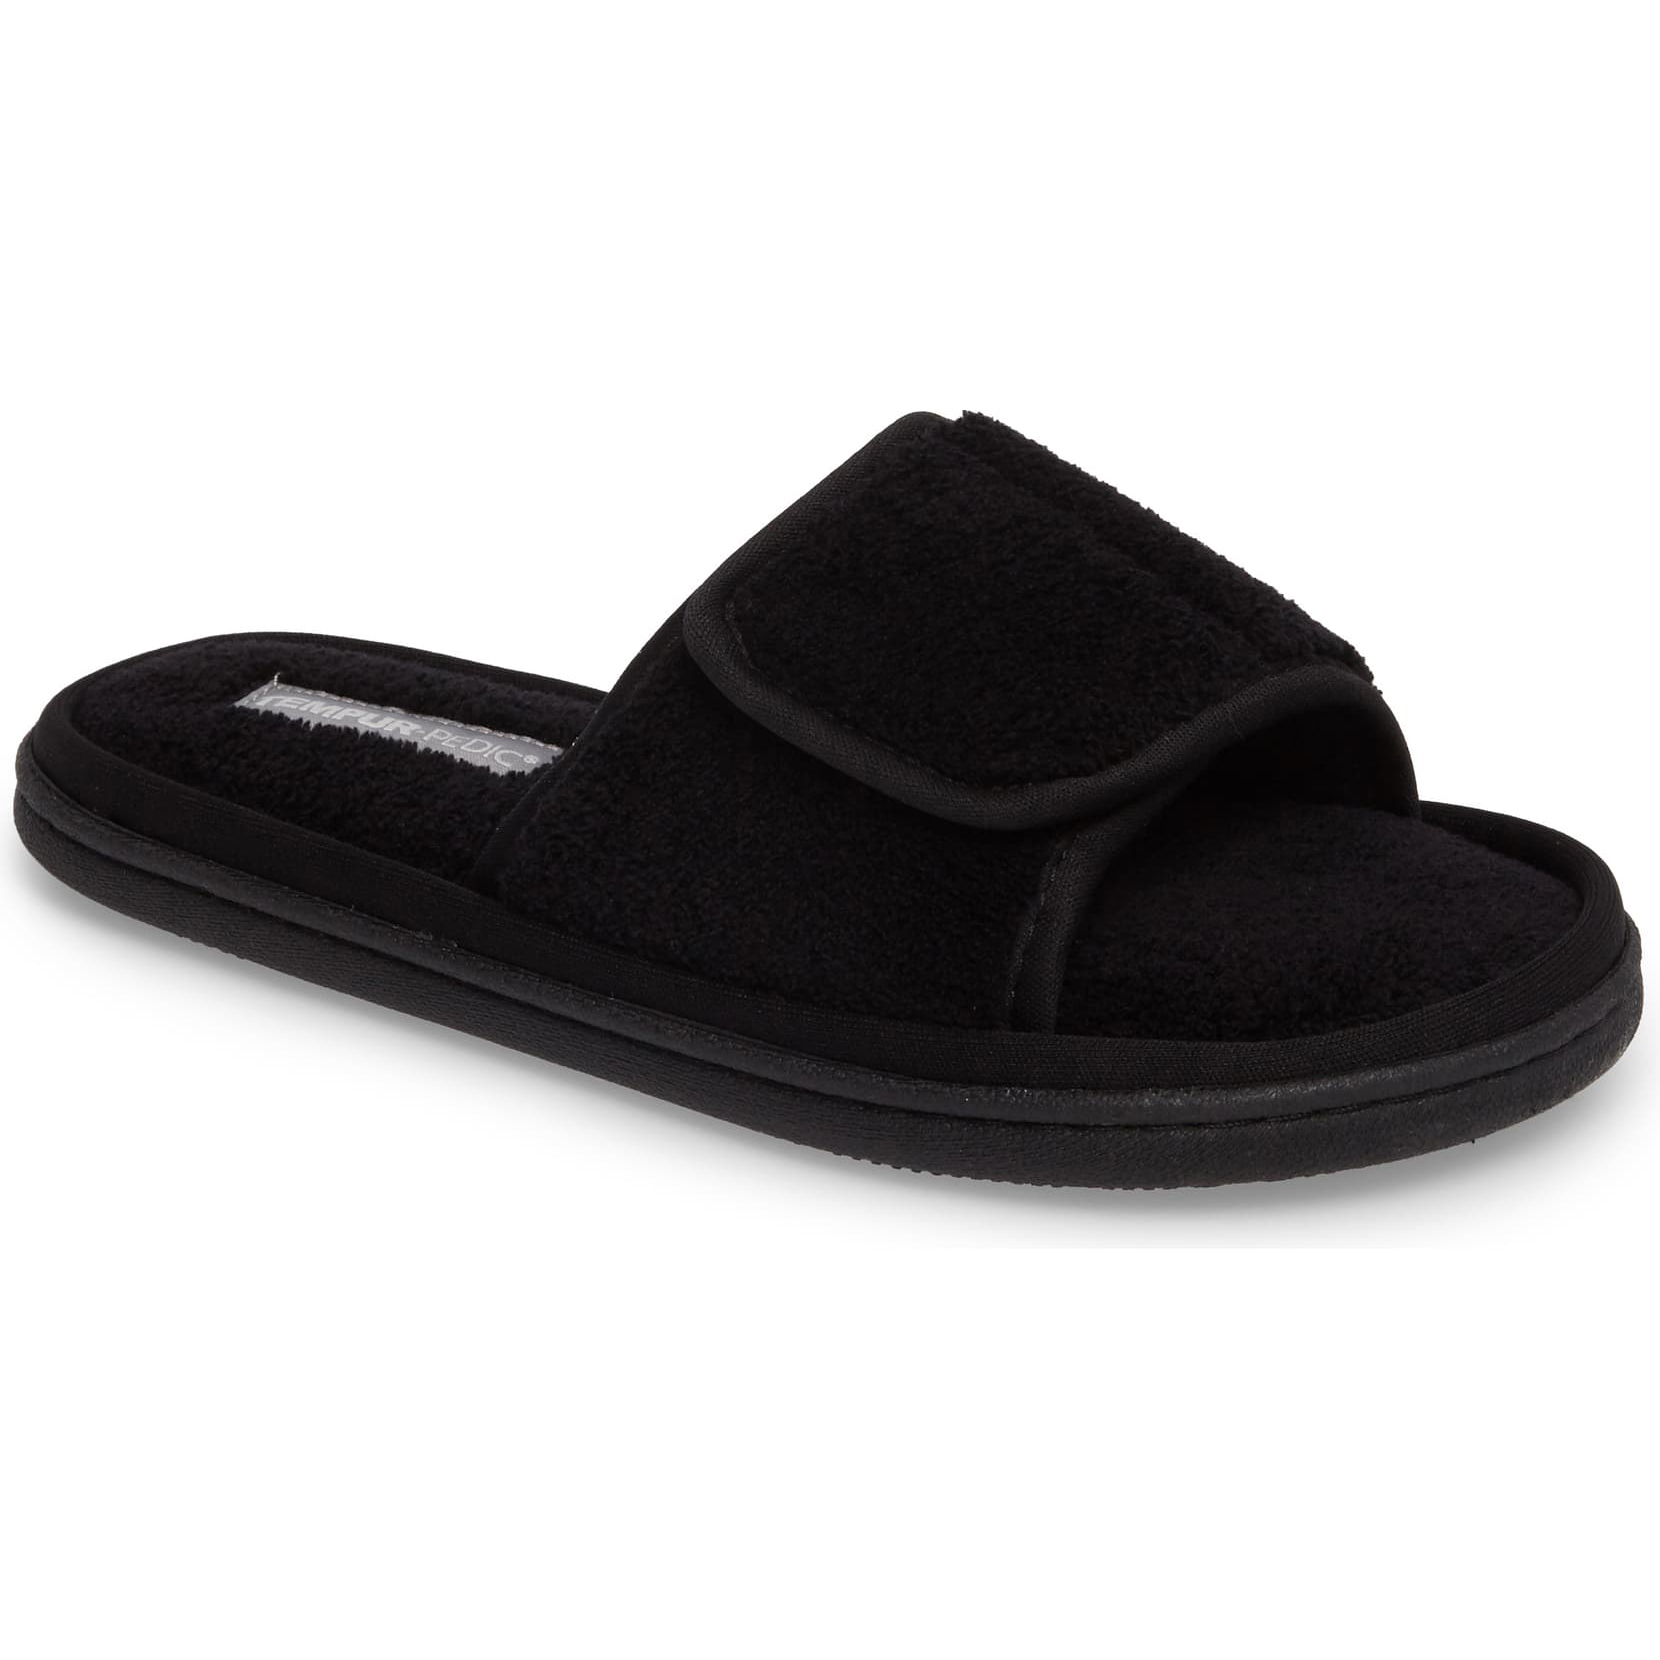 Tempur-Pedic Geana Slipper